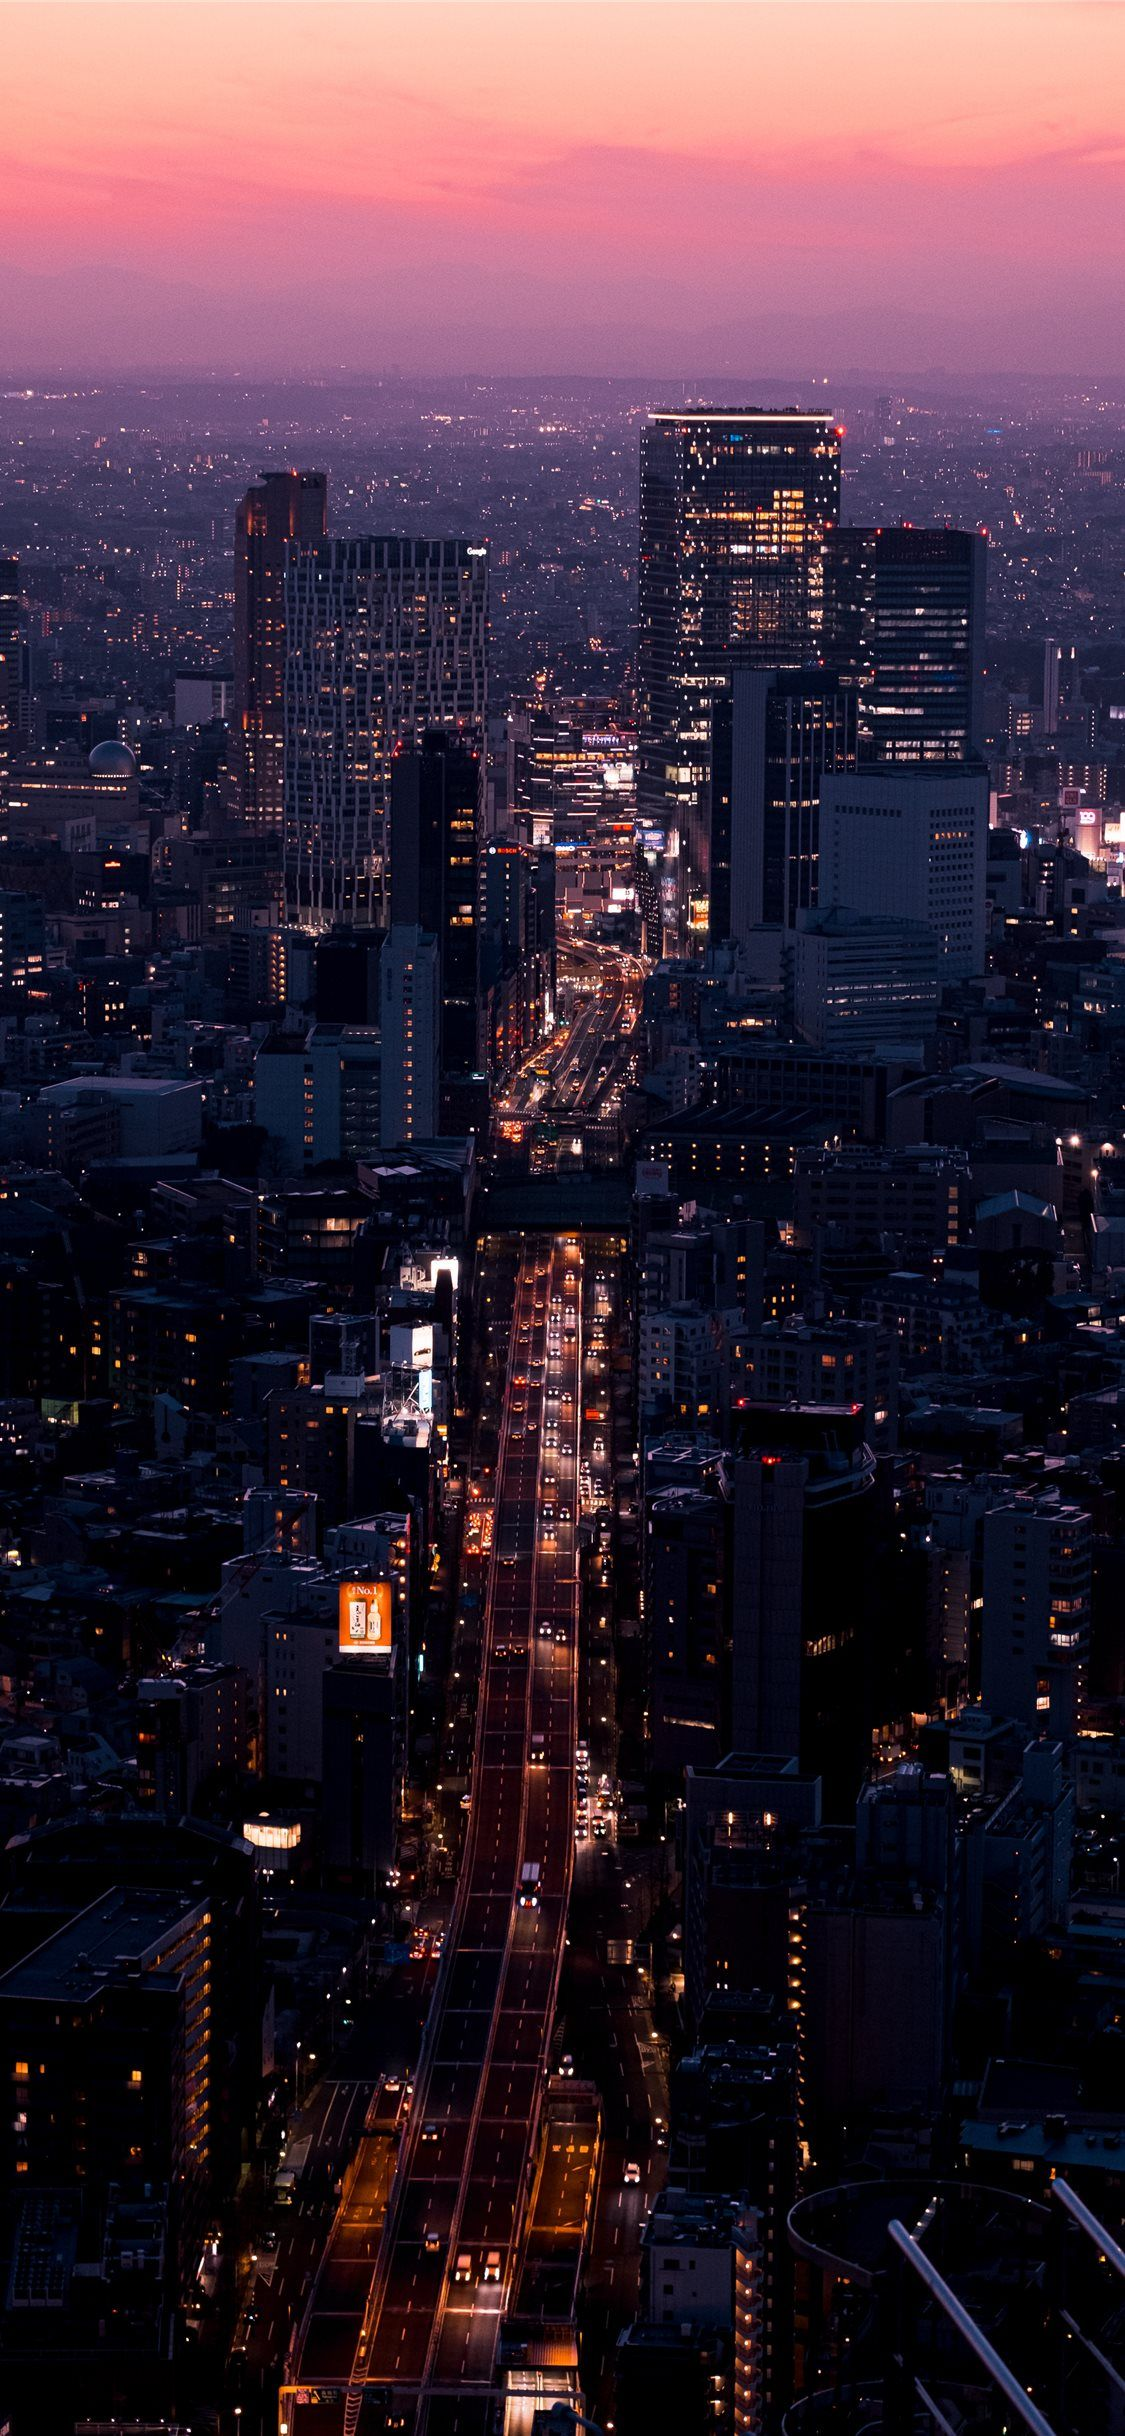 Aerial View Of City Buildings During Night Time Landscape Nature Scenery City Grey Iphone11wallpa In 2020 City Wallpaper Iphone Wallpaper Photography Aerial View